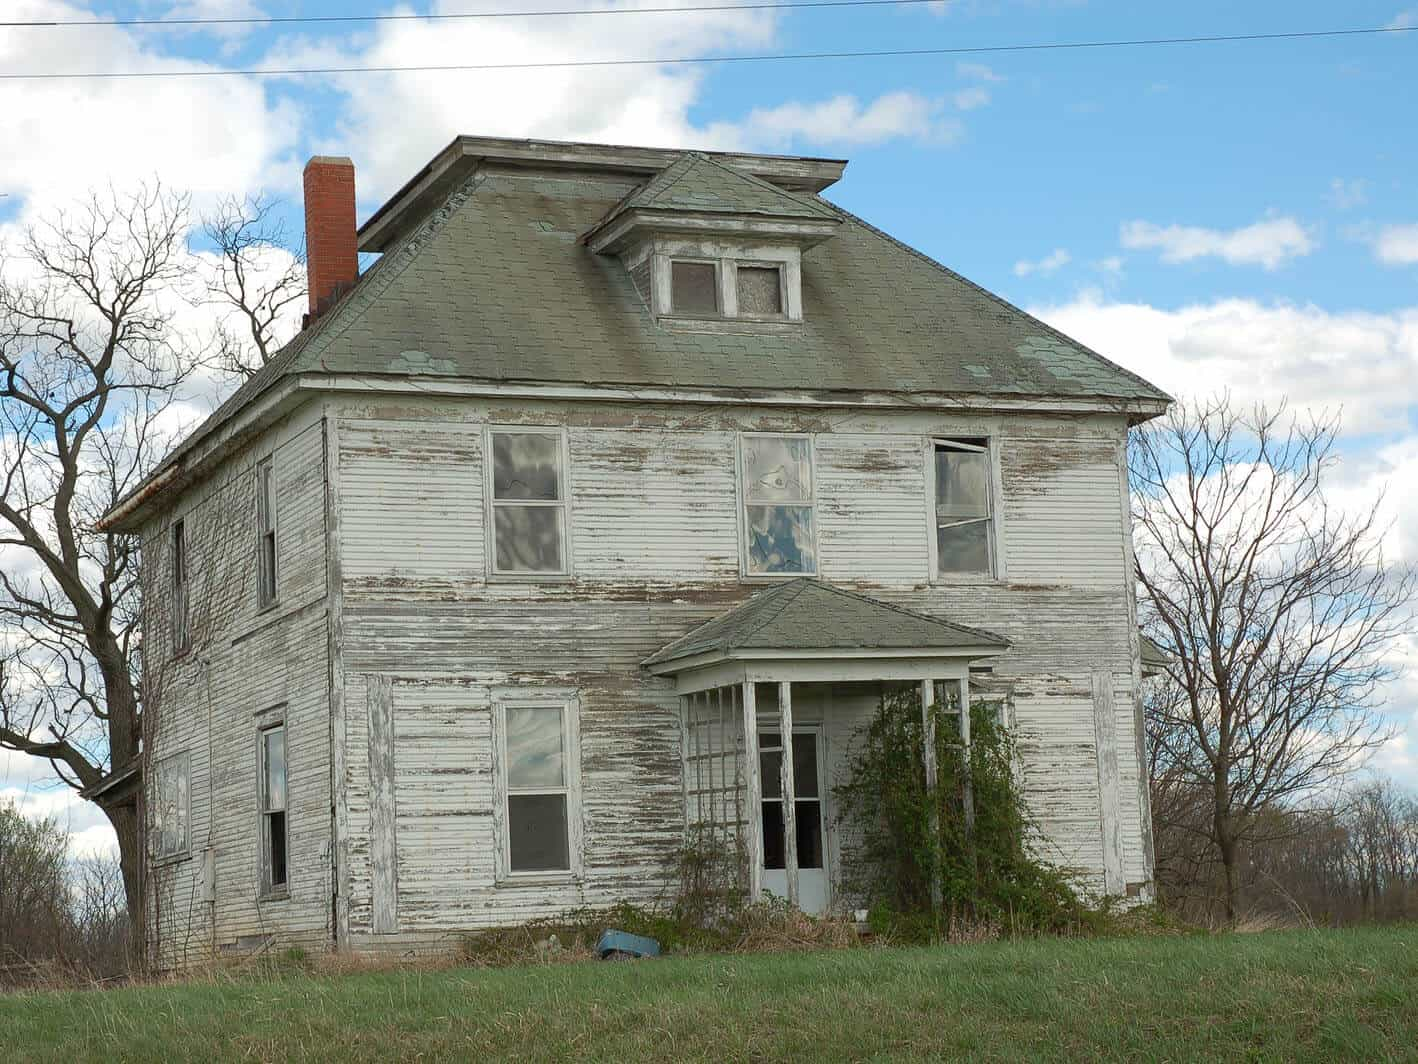 unoccupied house